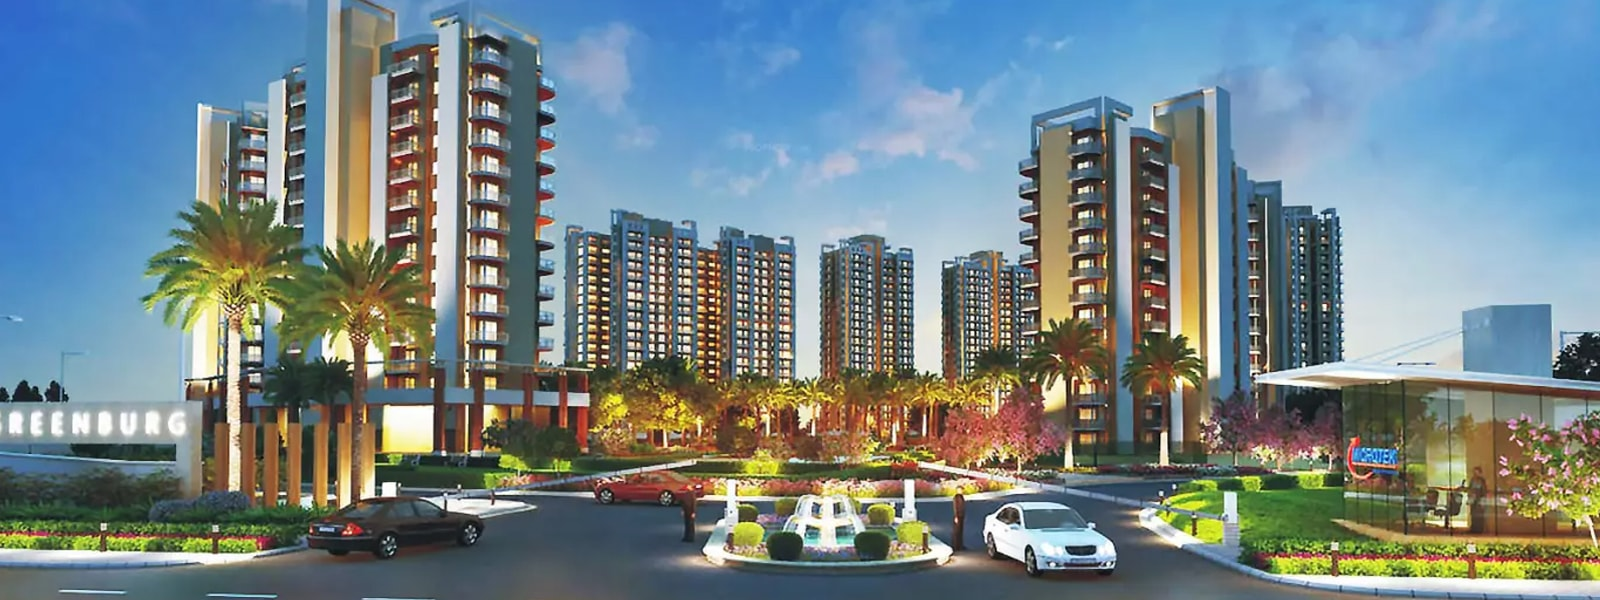 greenburg gurgaon